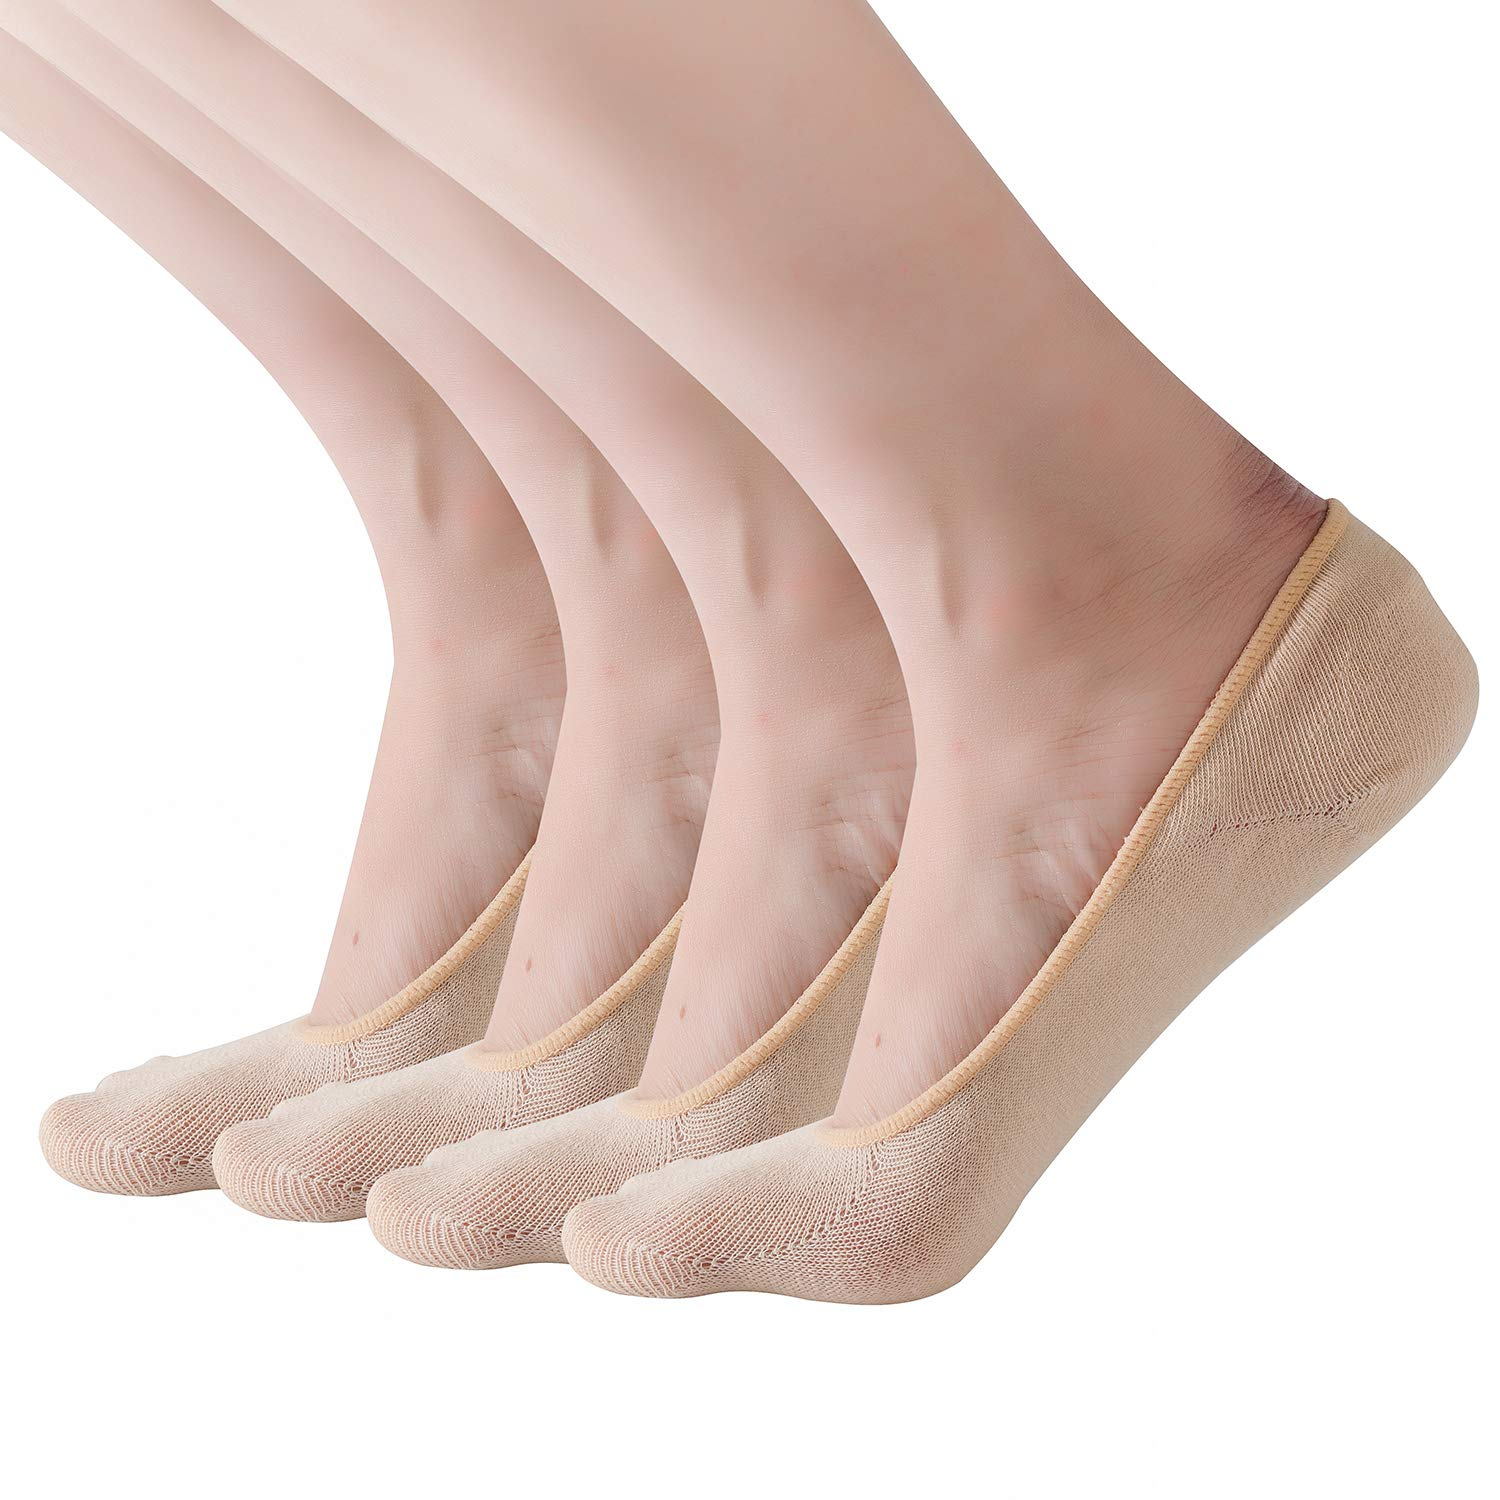 RIIQIICHY No Show Socks Women Low Cut Liner Non-Slip for Flats Cotton 4 to 6 Pack